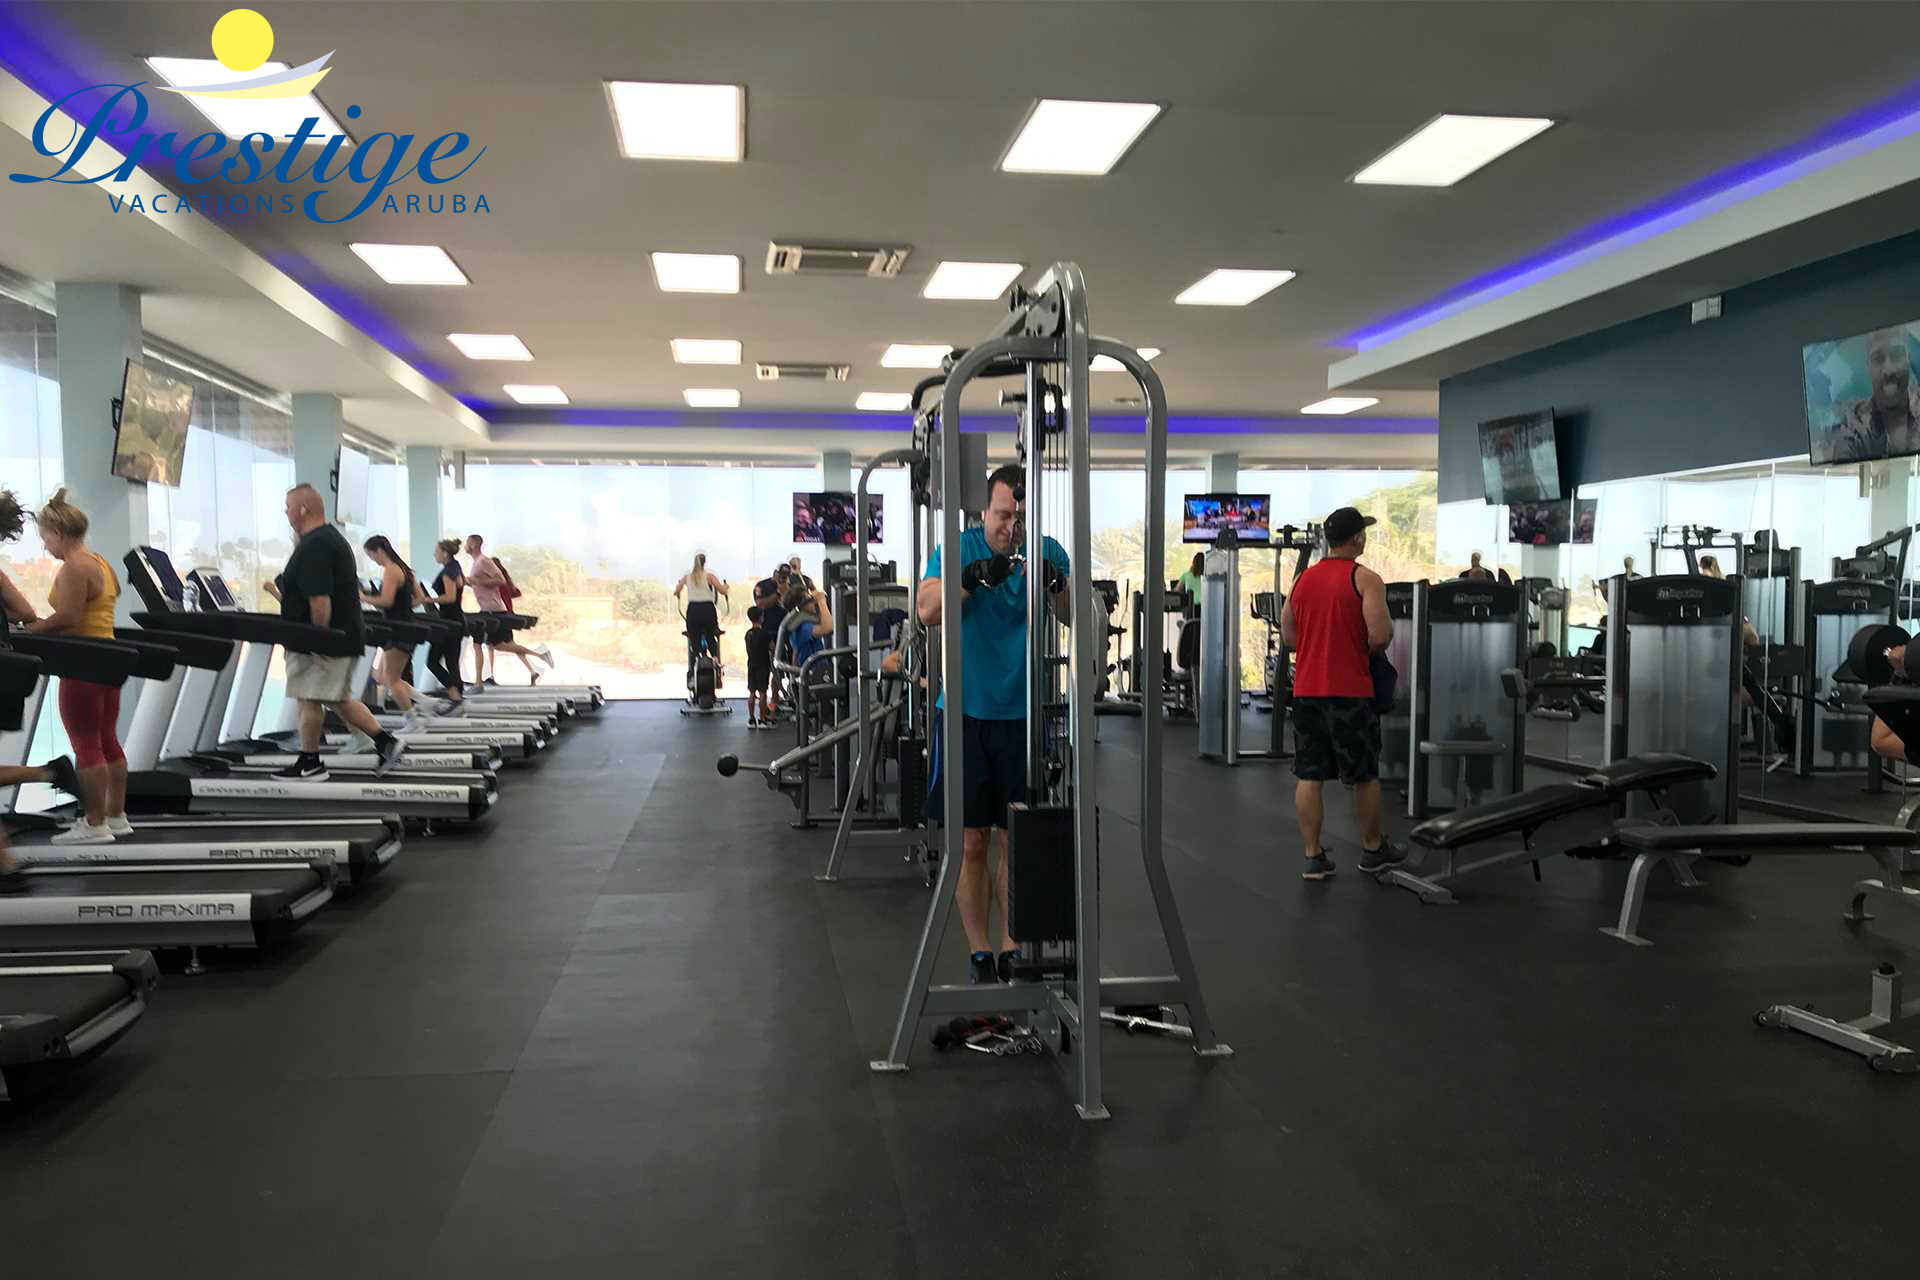 Divi's resort Fitness Center with updated Strength Training Equipment